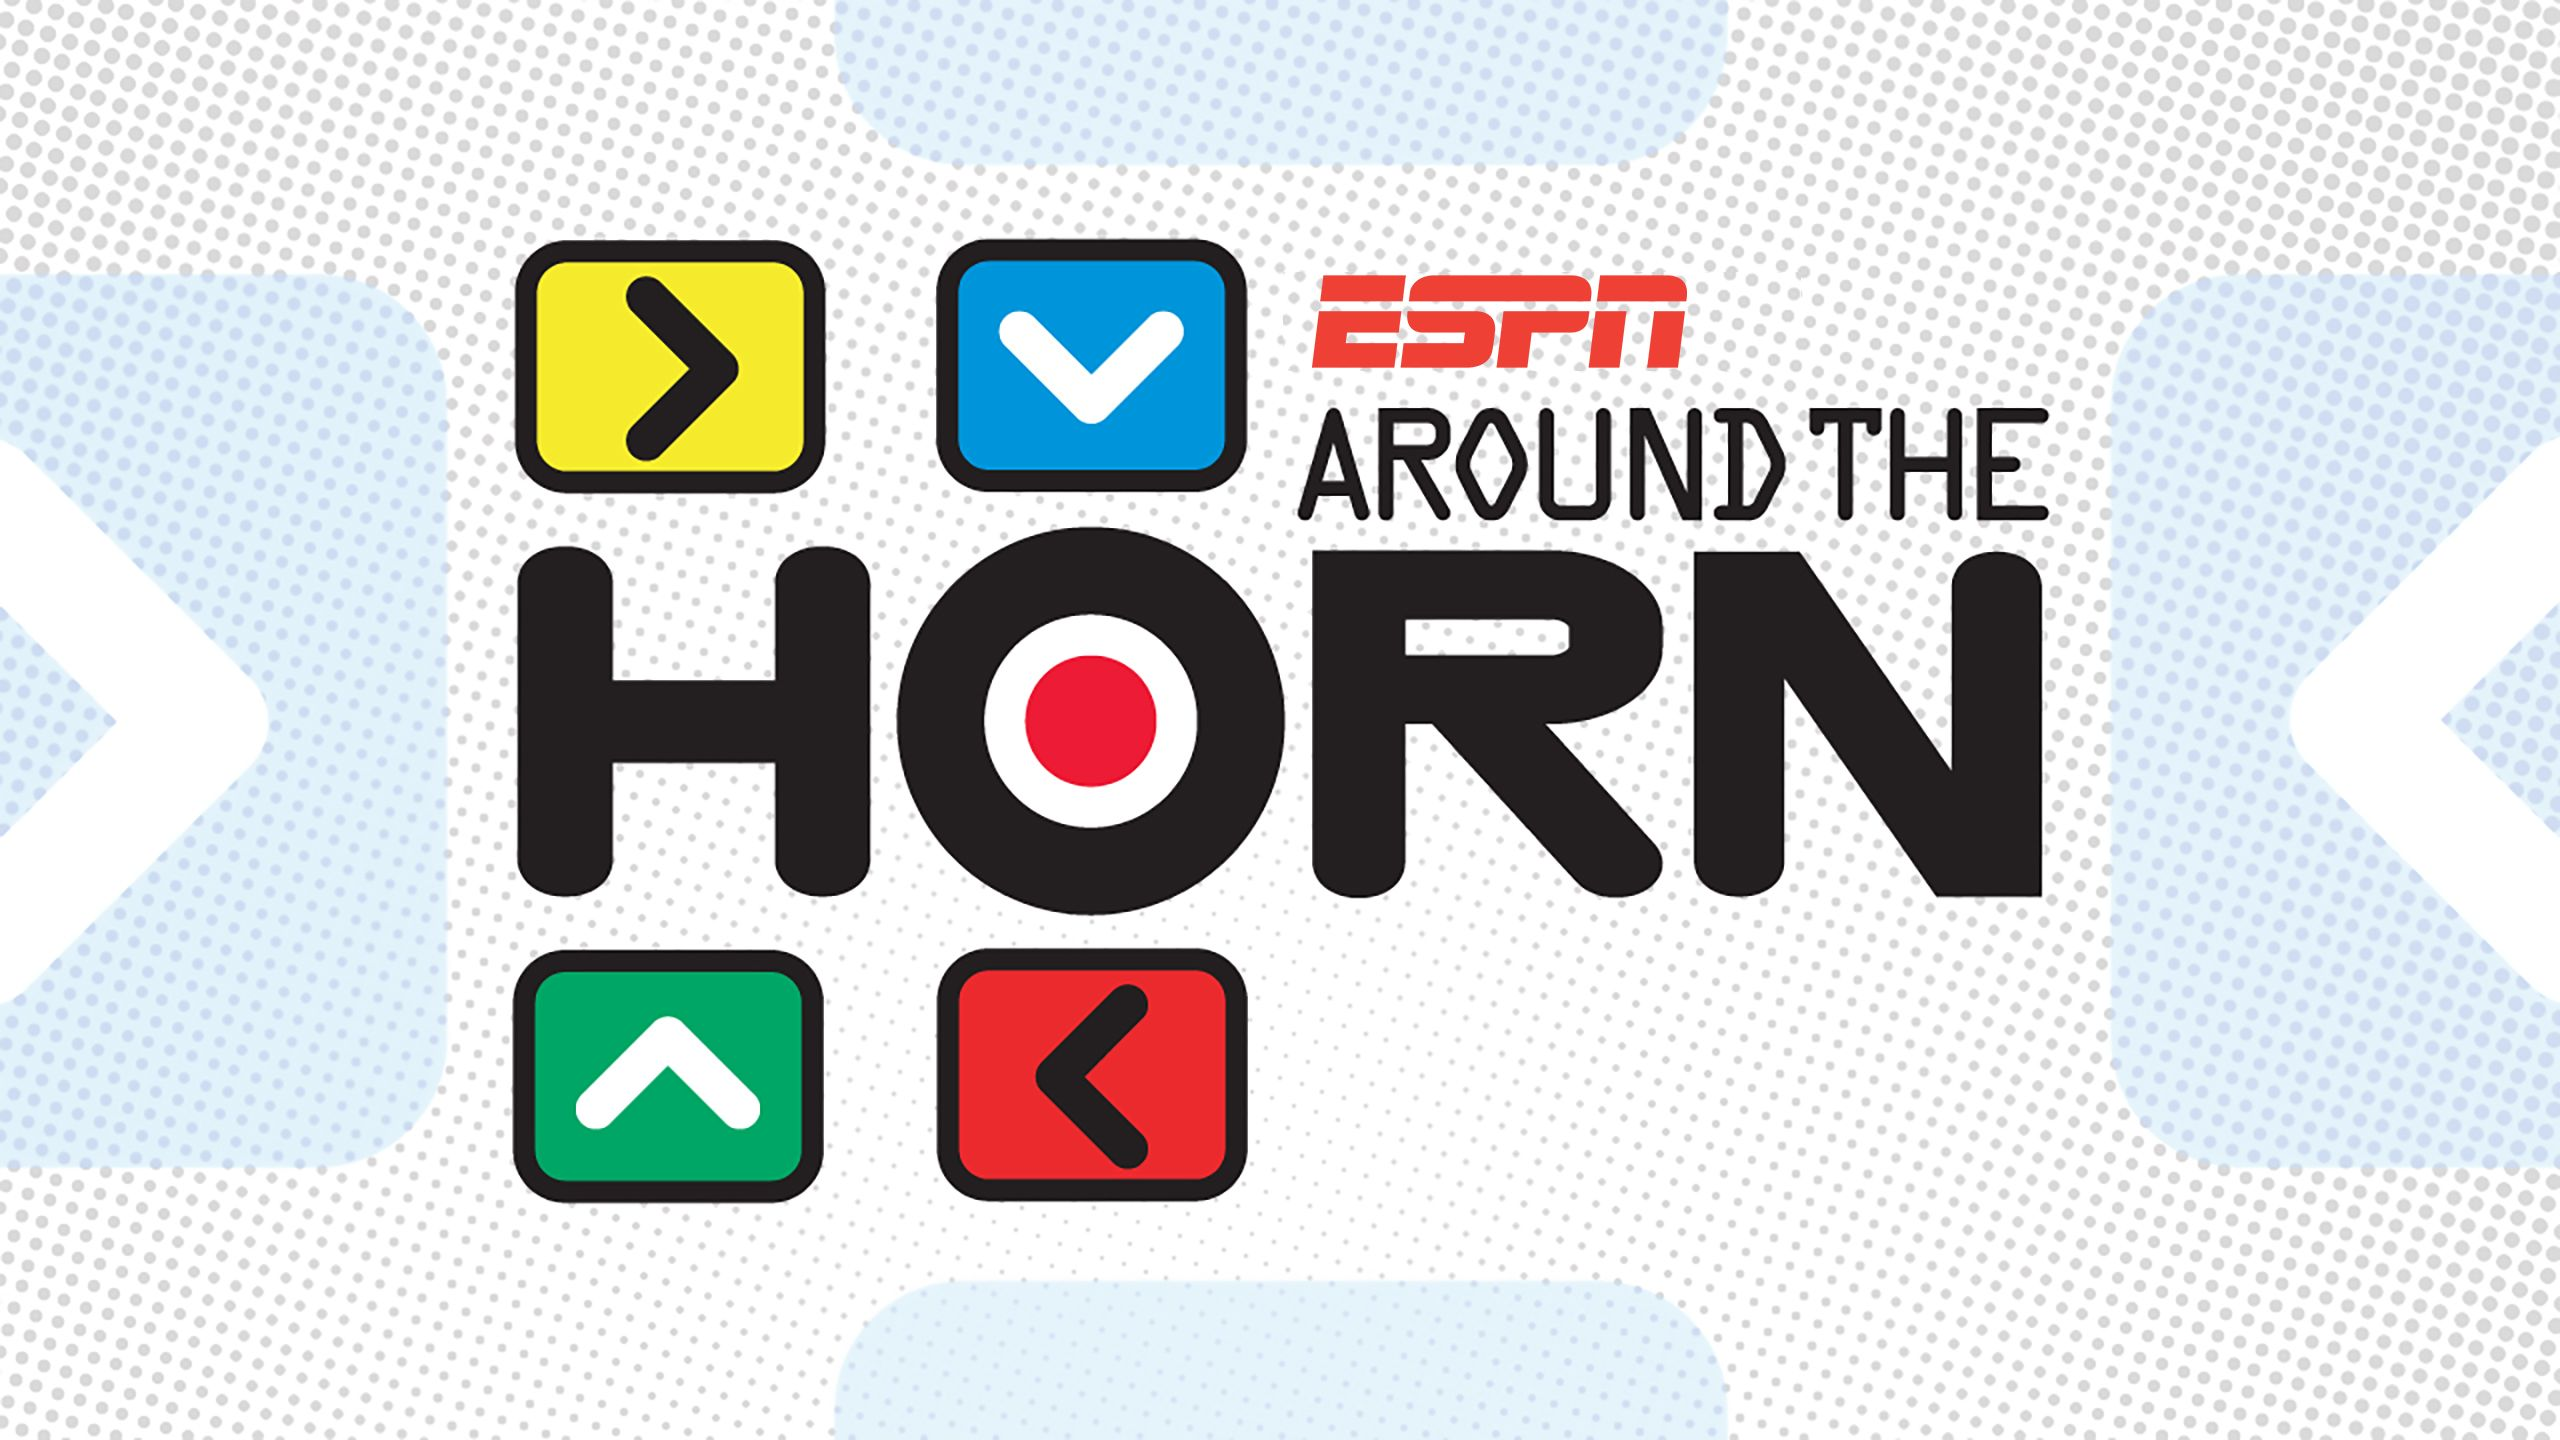 Mon, 1/15 - Around The Horn